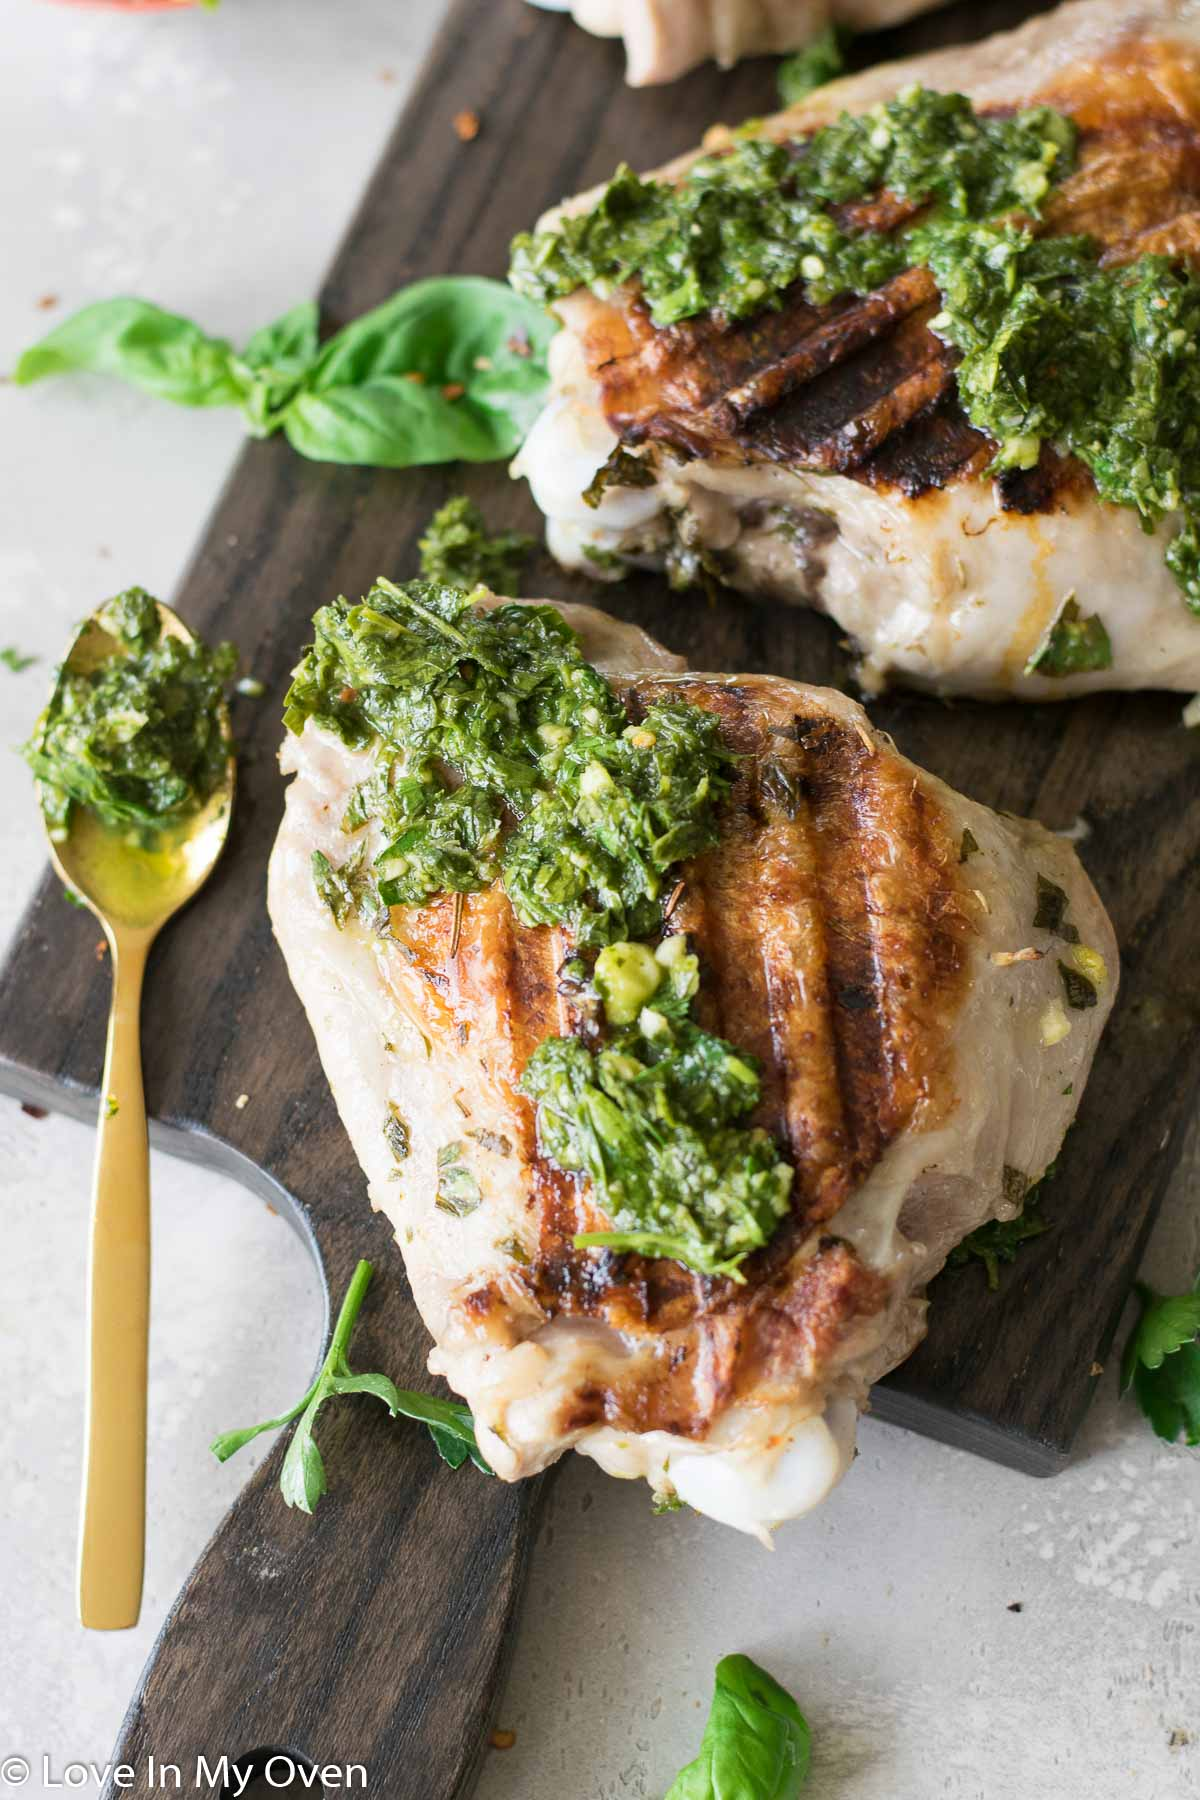 grilled turkey with chimichurri sauce